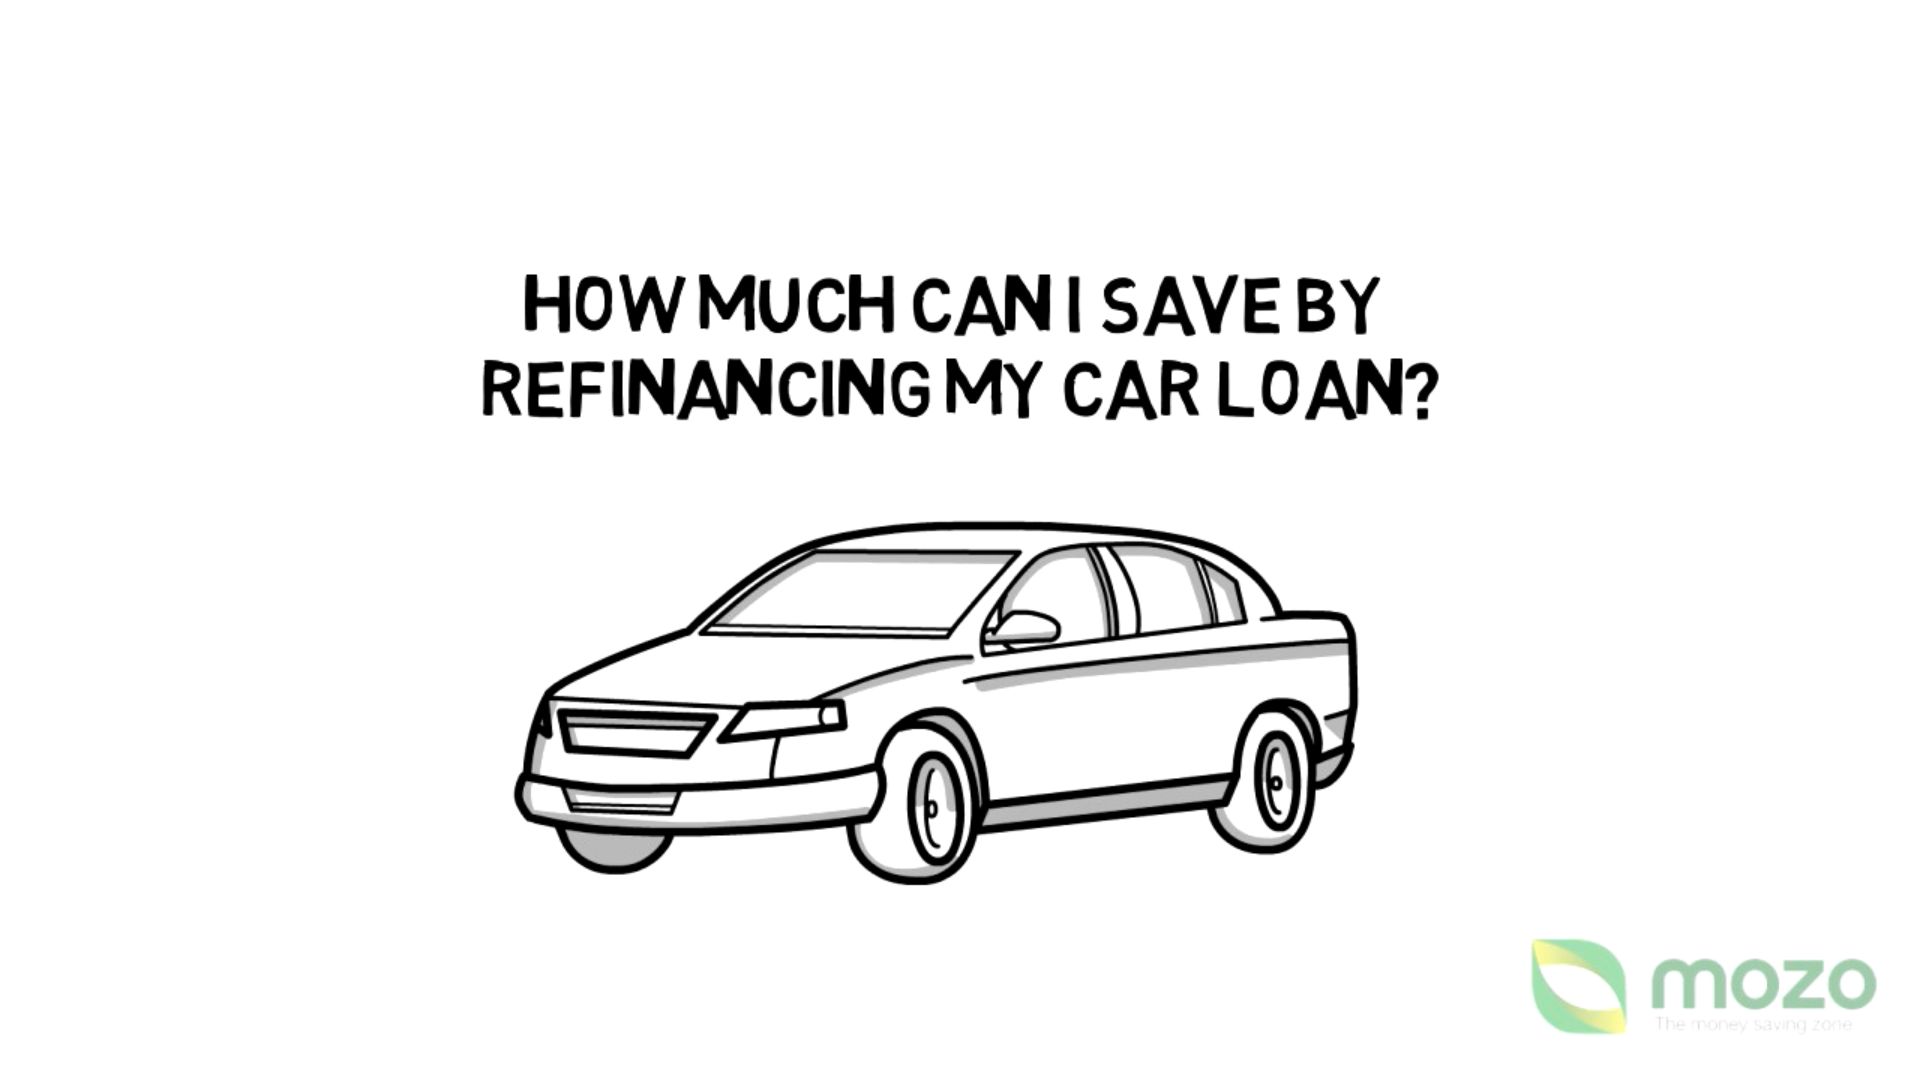 Top Refinance Car Loans 2020 – Compare Low Rates and Save